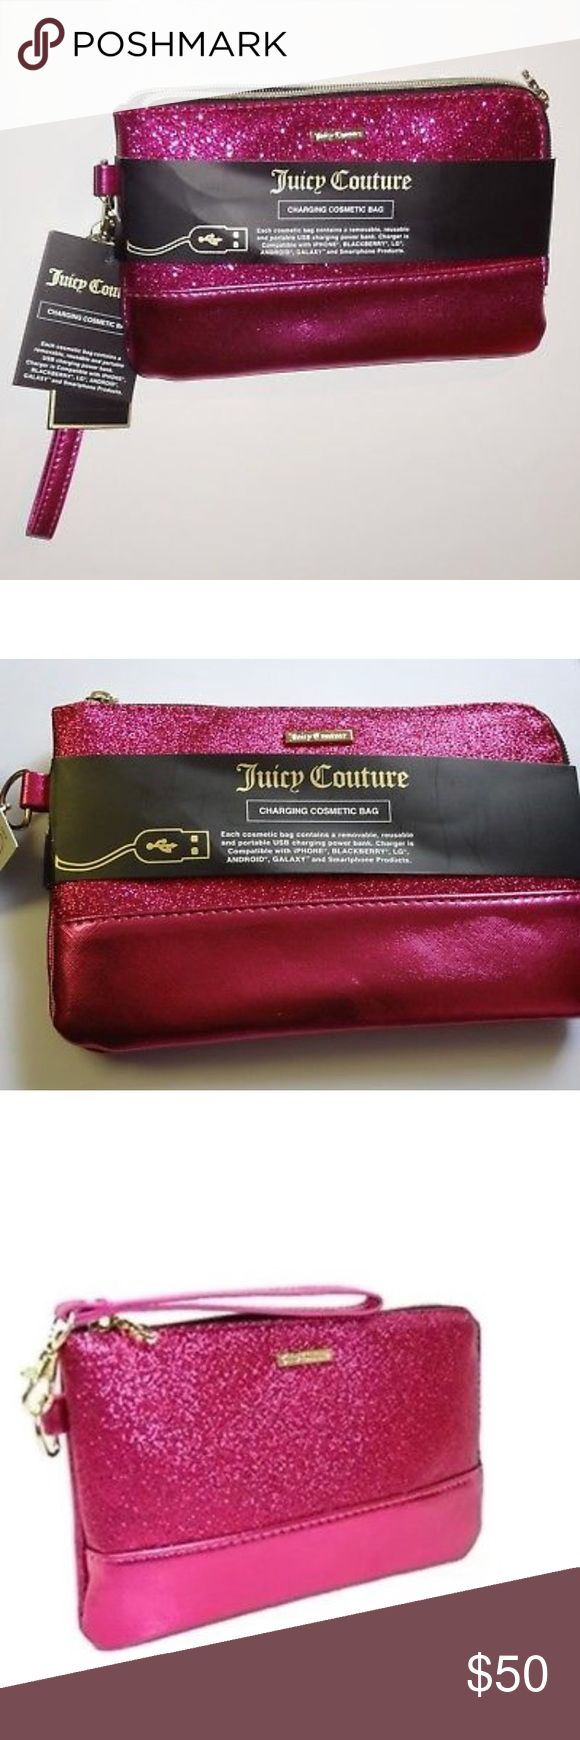 "NWT Juicy Couture Charging Cosmetic Bag Brand New Juicy Couture Hot Pink Glitter Charging Wallet!  •Gold logo plate and gold JC charm zipper.  POWER ELECTRONICS ON THE GO !! •Removable, reusable and portable USB charging power bank.  •Charger compatible with all products (iPhone, Android, Galaxy, LG, Blackberry & Smartphone products) •Removable wristlet strap included - use as a clutch too •Versatile - charger, makeup bag, purse, wallet, handbag.  •Measurements:  Purse 8 1/2"" width, 5 1/2""…"